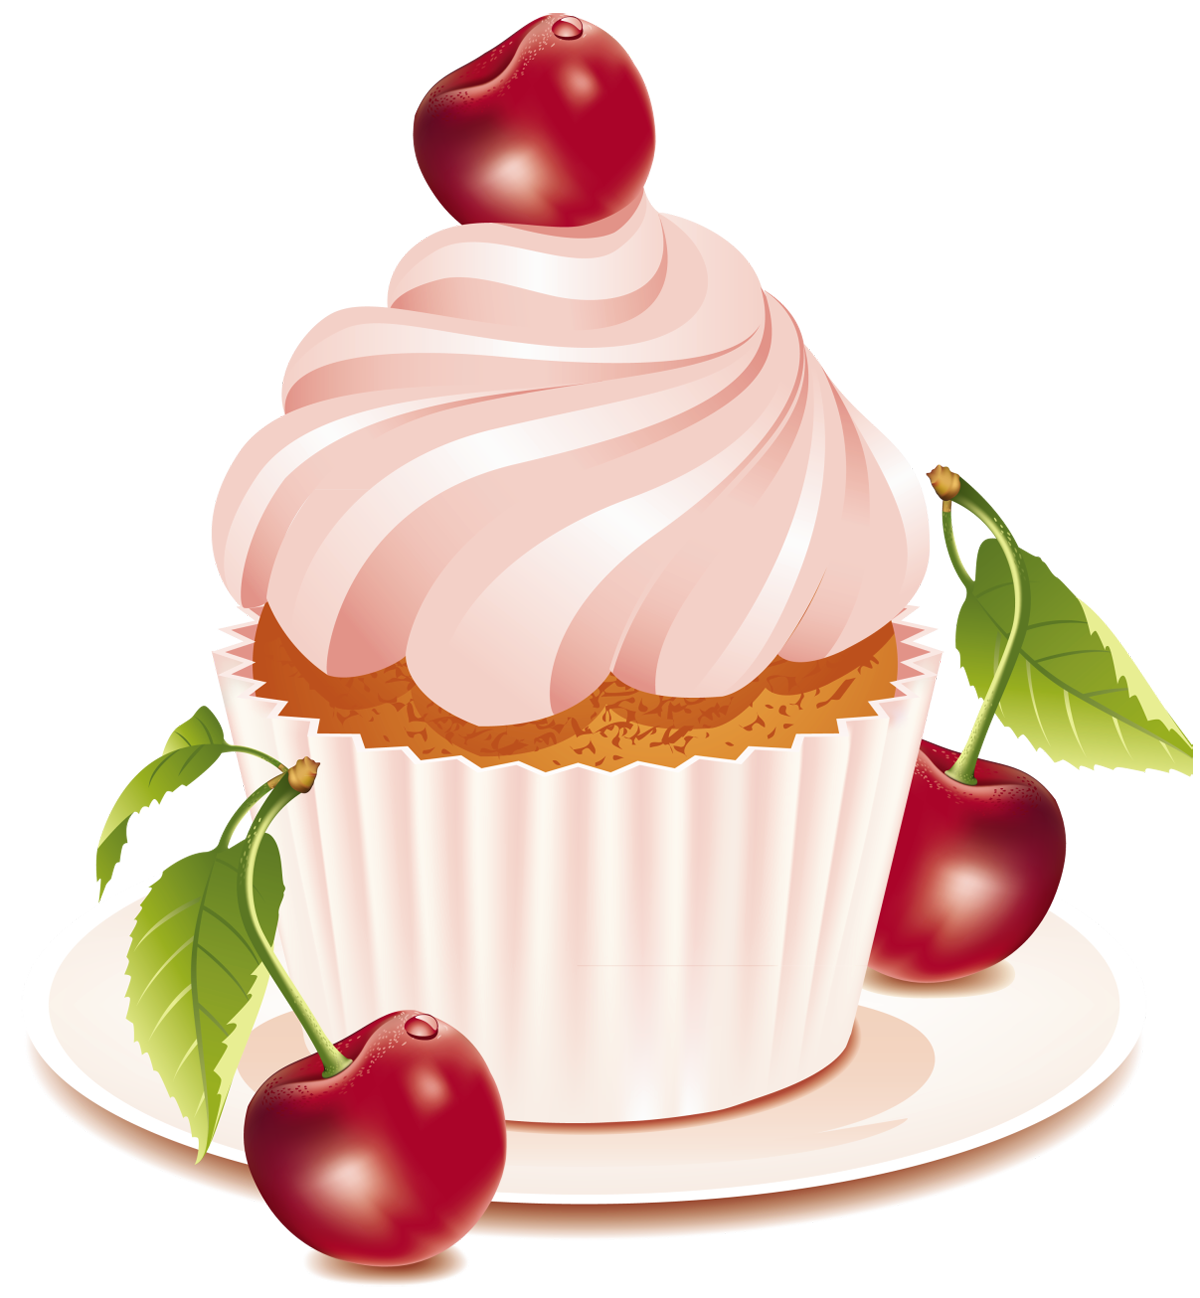 Cherry cake png gallery. Bakery clipart transparent